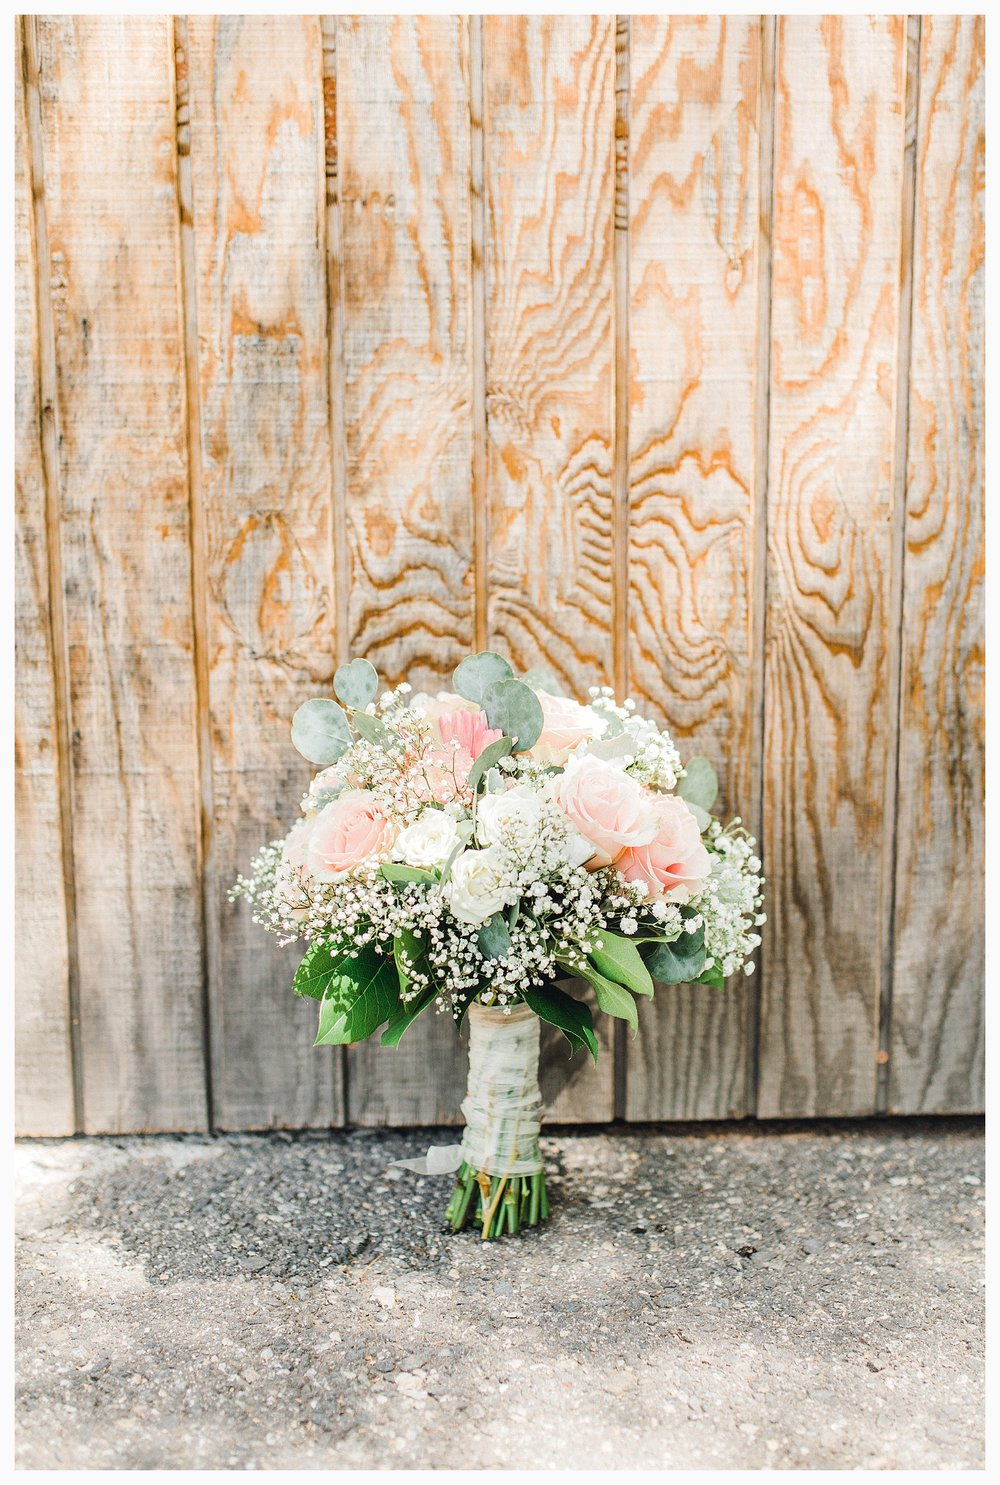 Rustic barn wedding in Wenatchee Washington at Sunshine Ranch on Easy Street, Emma Rose Company Seattle PNW Light and Airy Wedding Photographer_0043.jpg